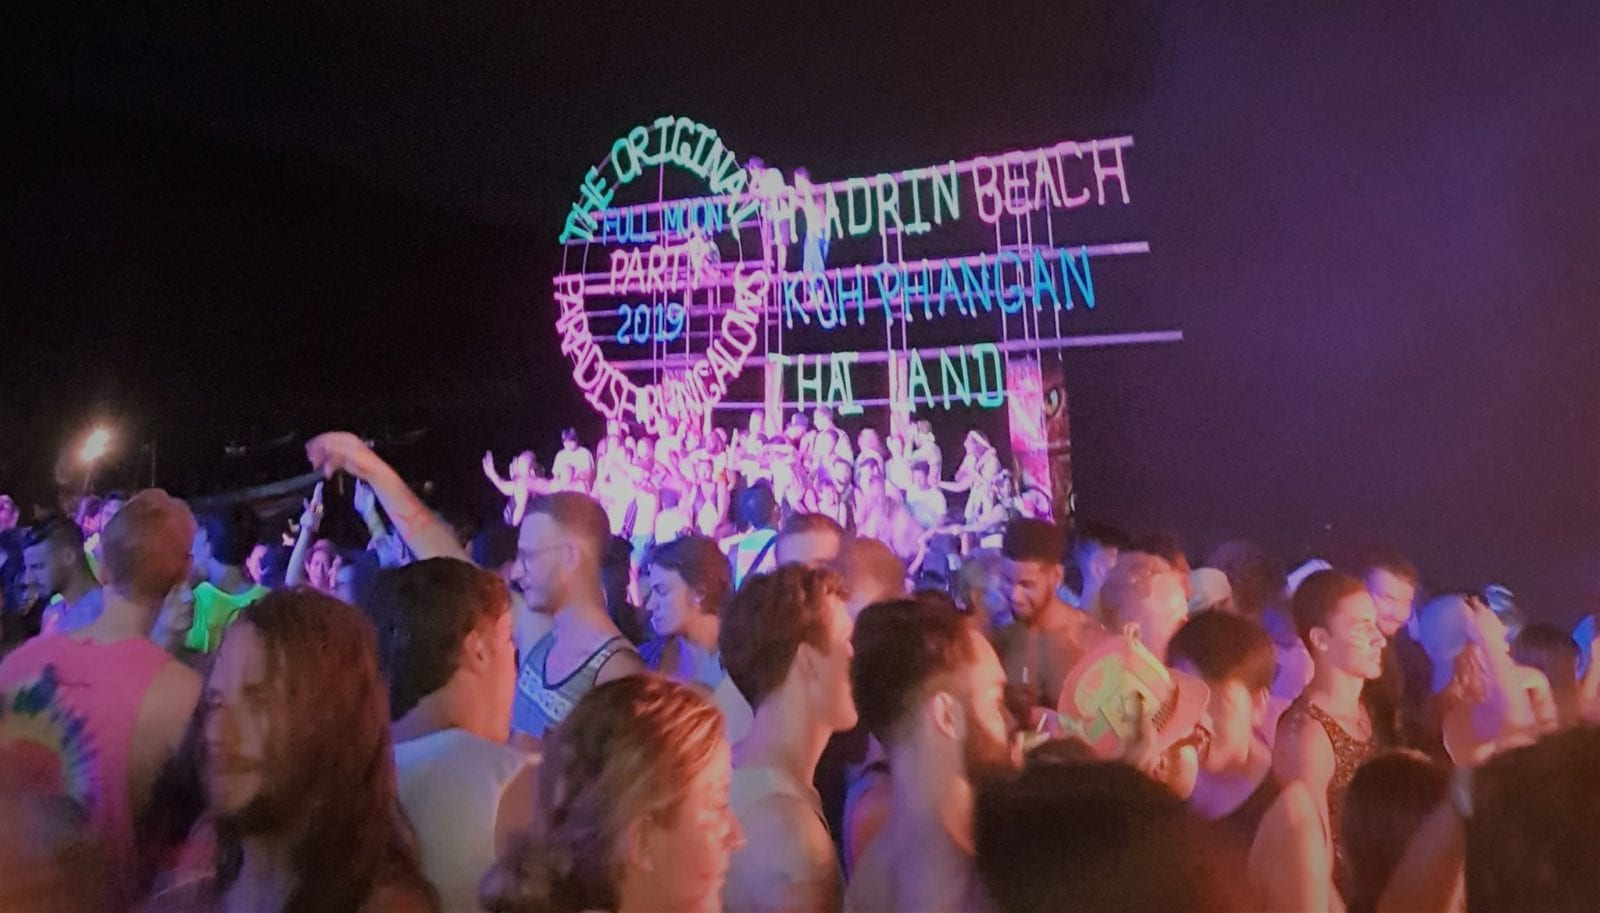 Party in full swing at the Full moon party, Koh Pha Ngan